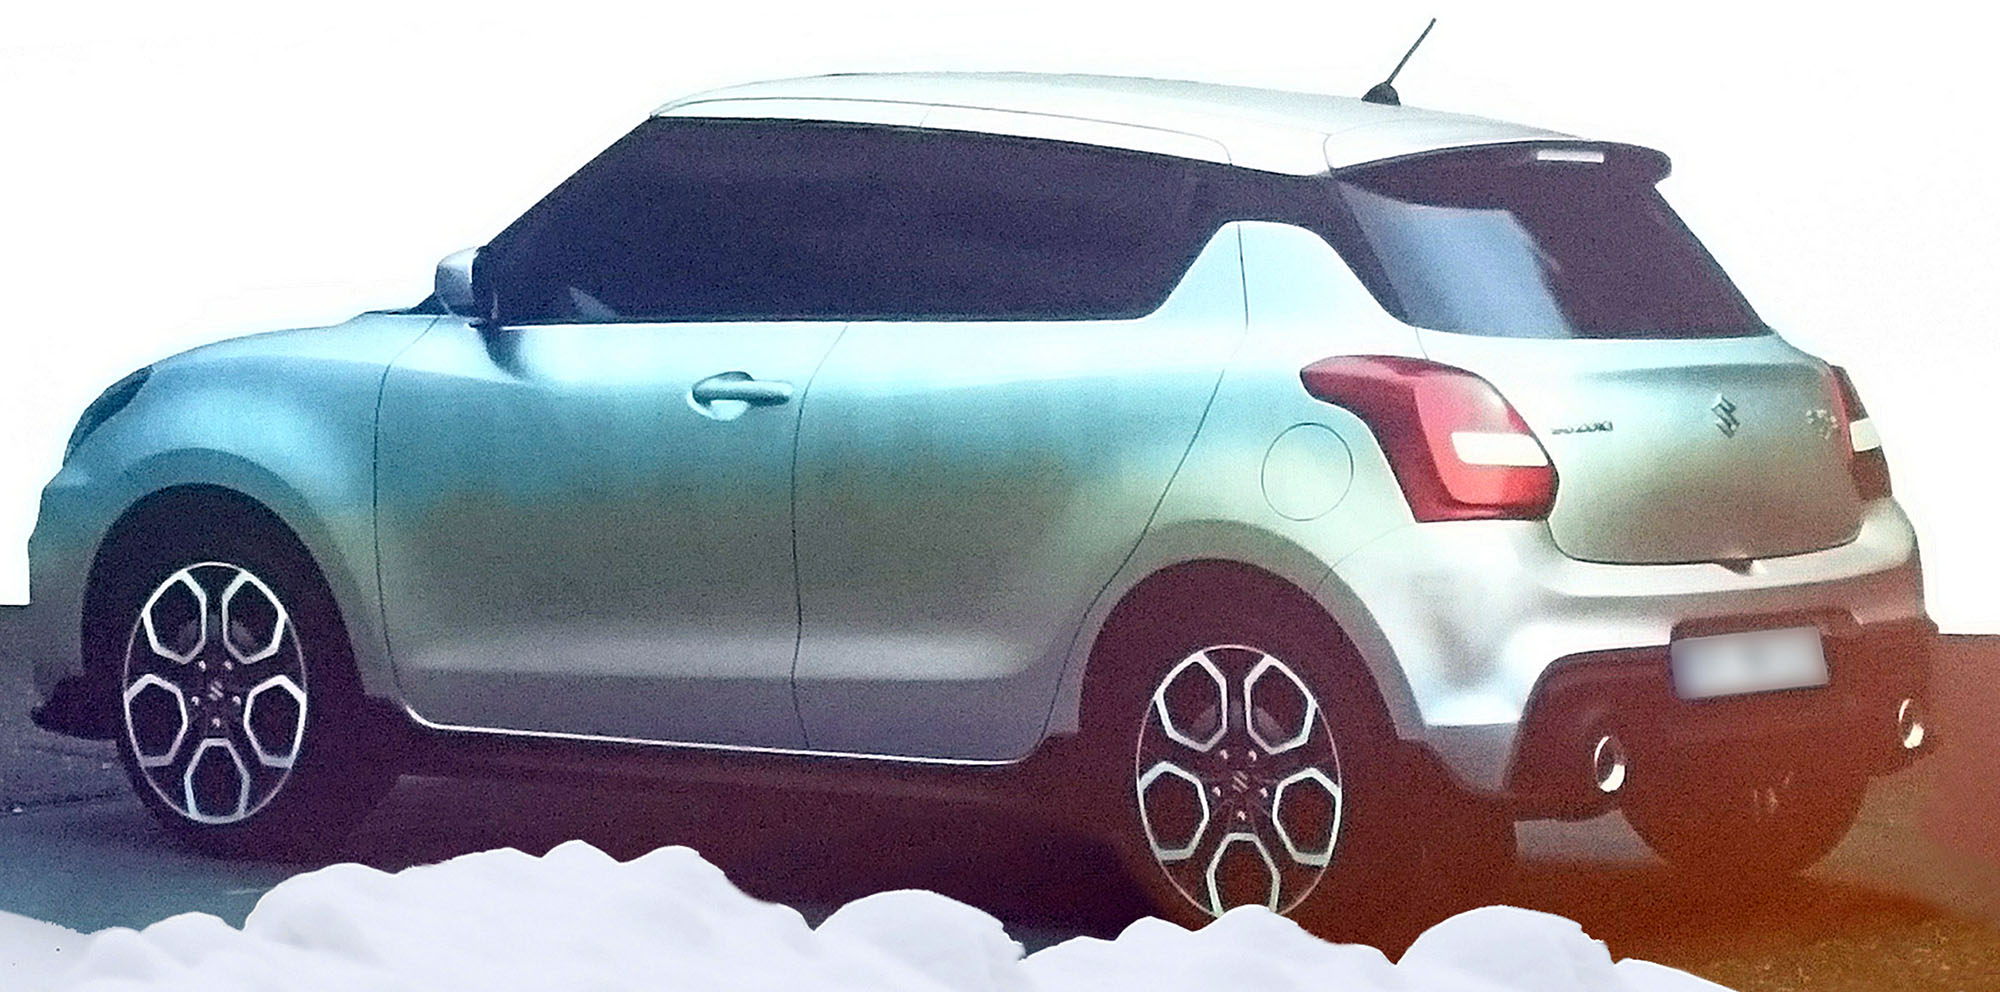 suzuki-swift-sport-leak-rear.jpg